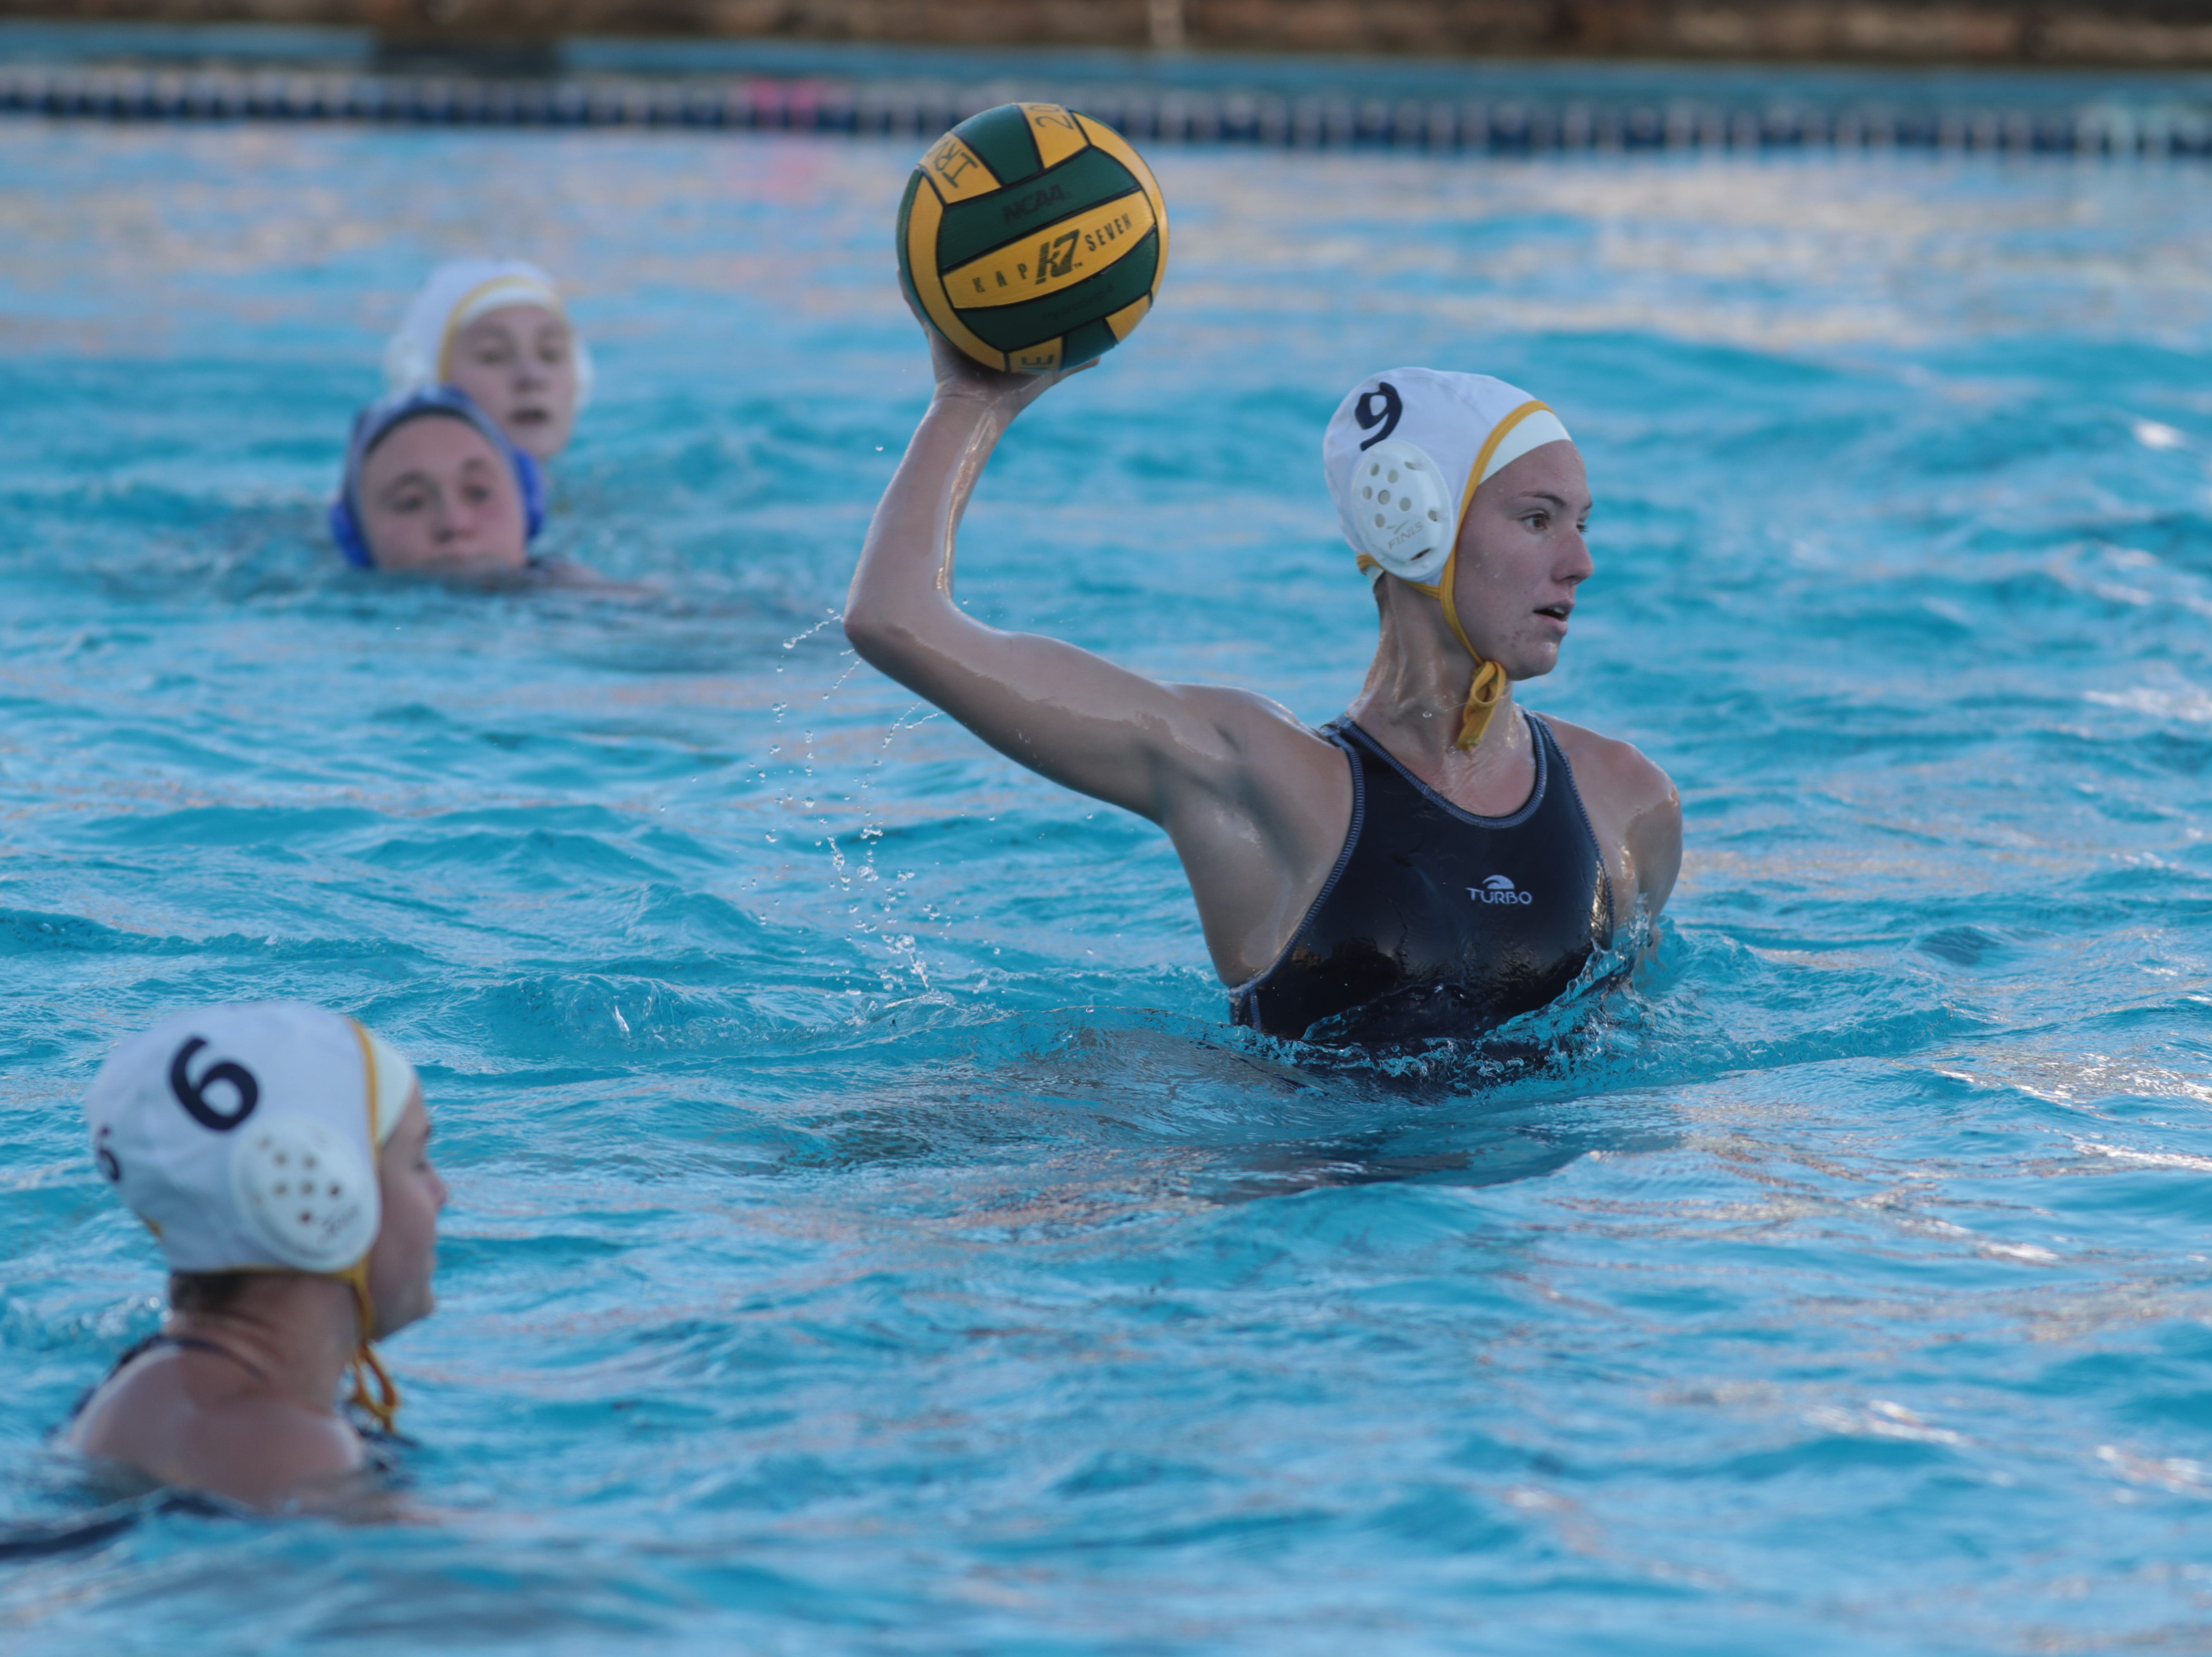 Rachel Sherman shoots for La Quinta water polo in the CIF Southern Section Division 4 championships, Irvine, Calif., Saturday, February 16, 2019.